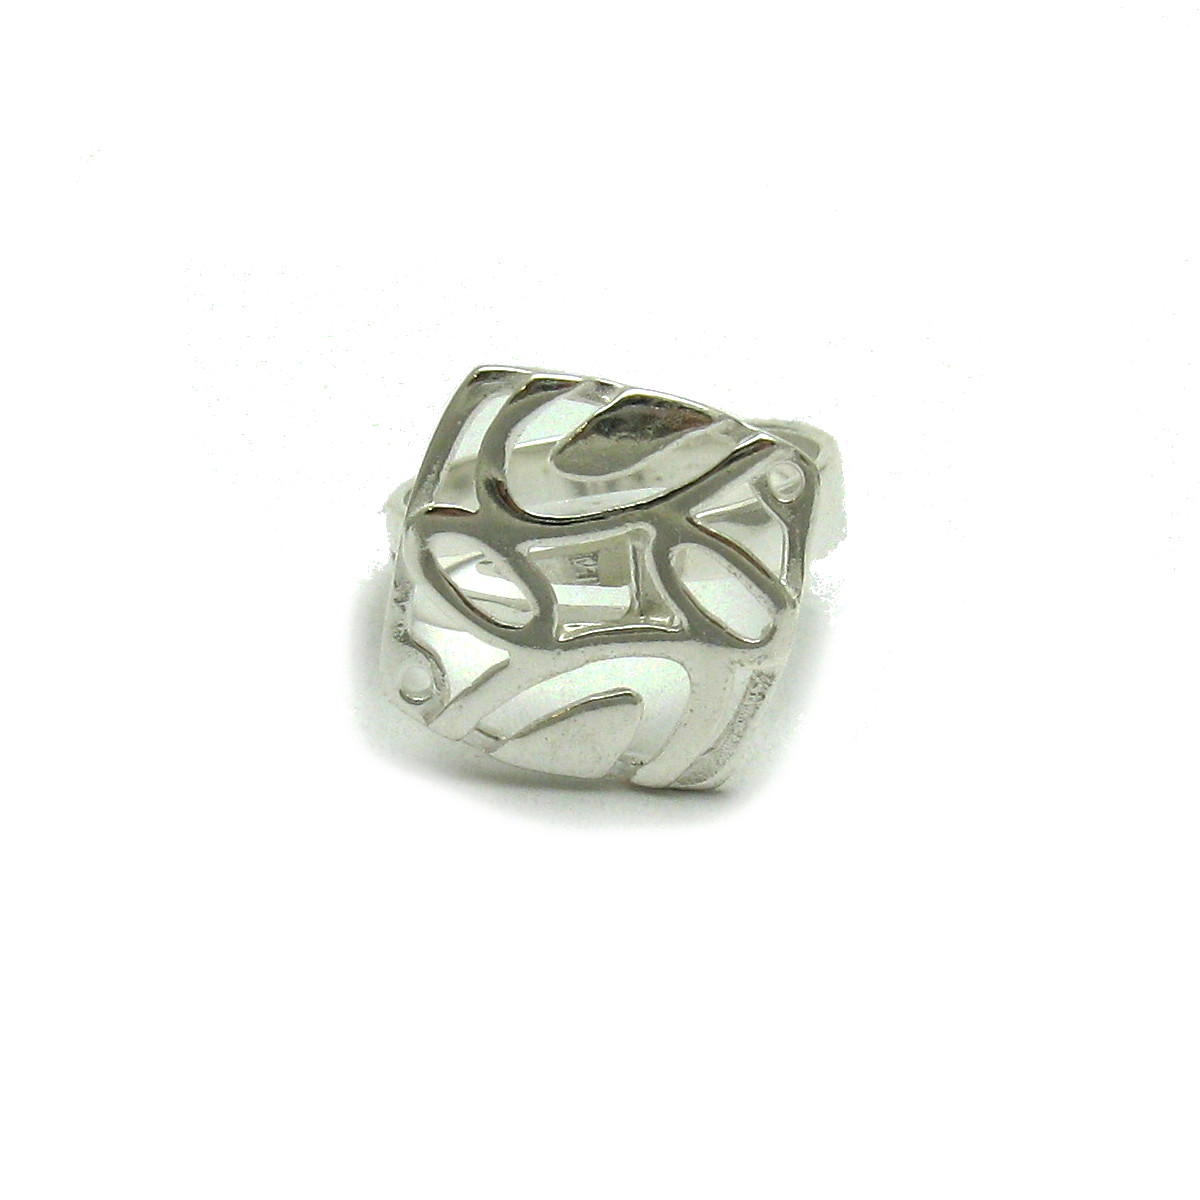 Silver ring - R001674